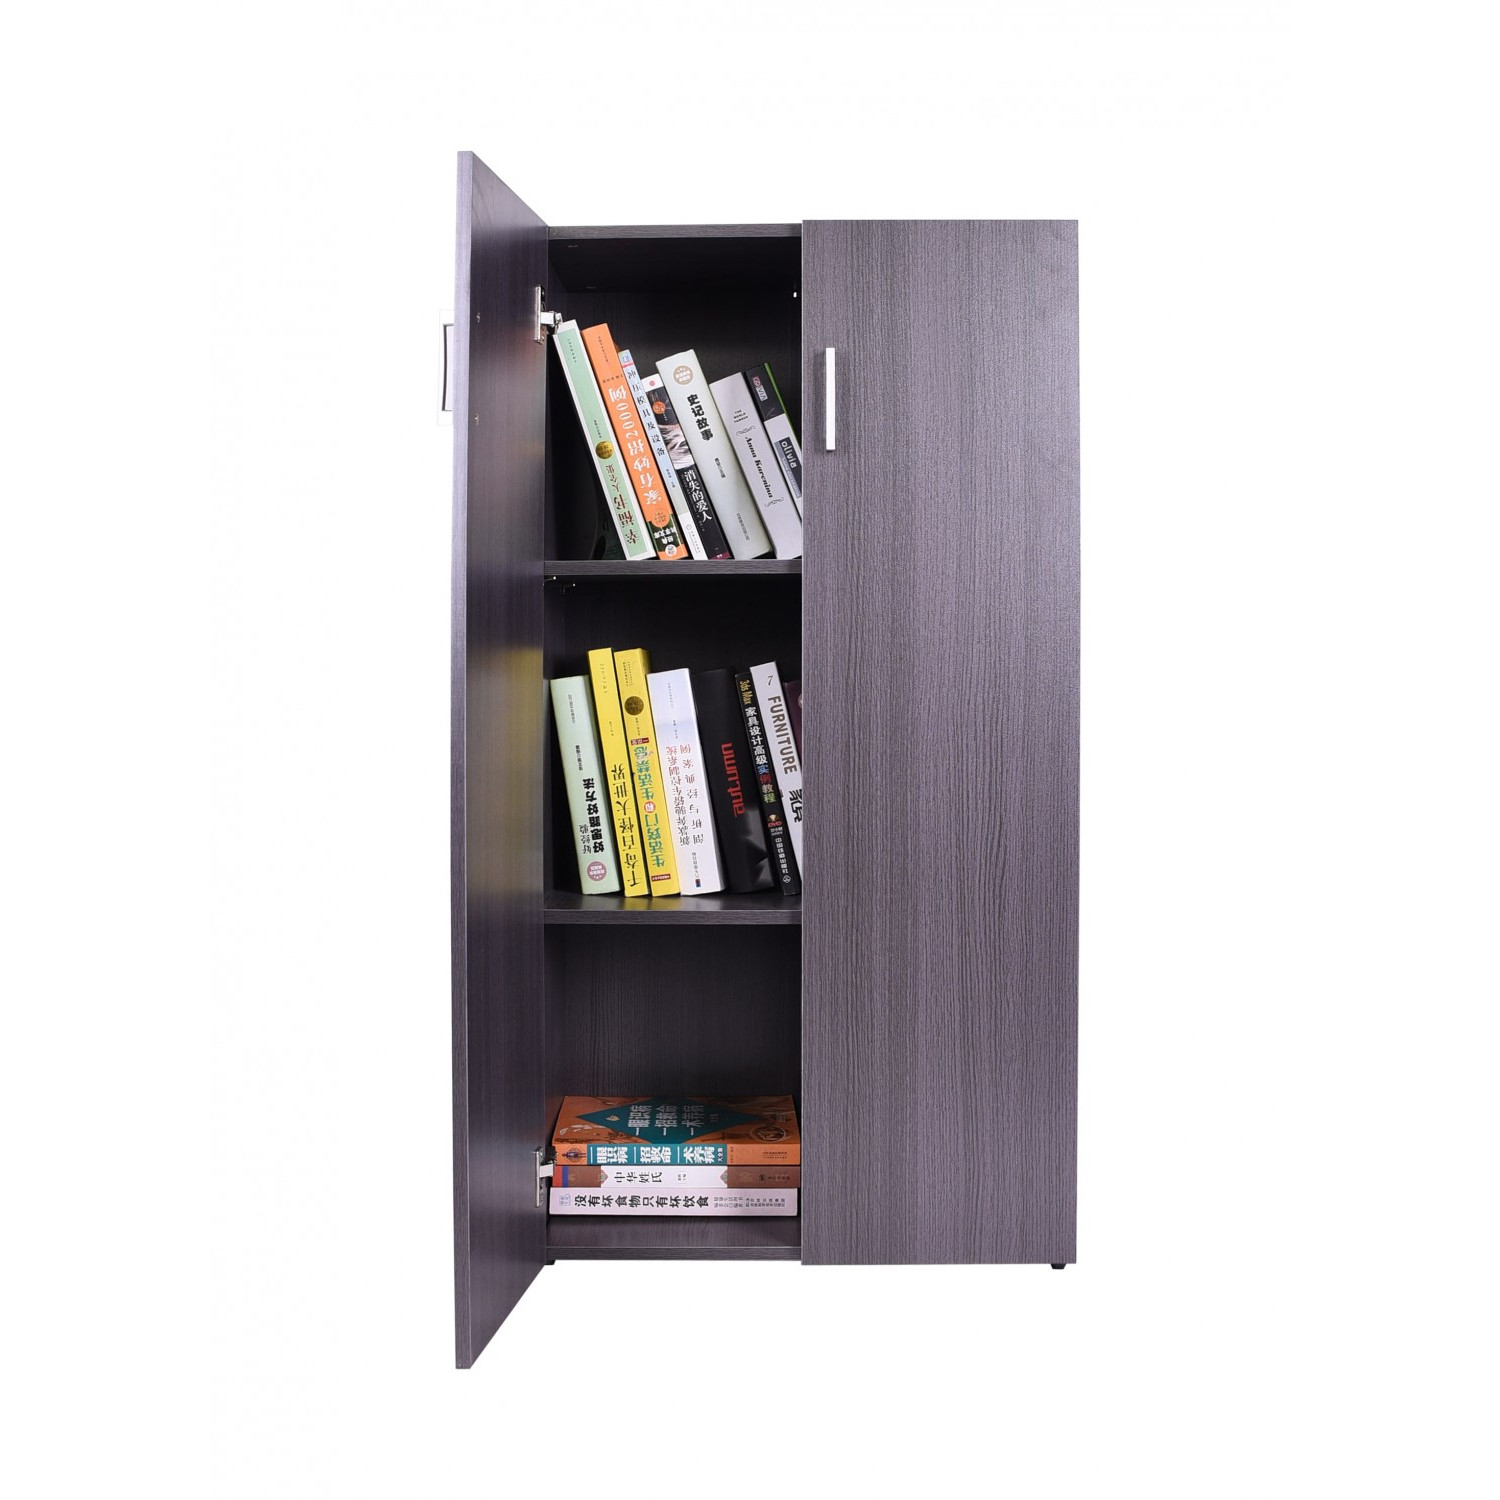 Bücherregal Dunkelbraun Inserate Für Regal